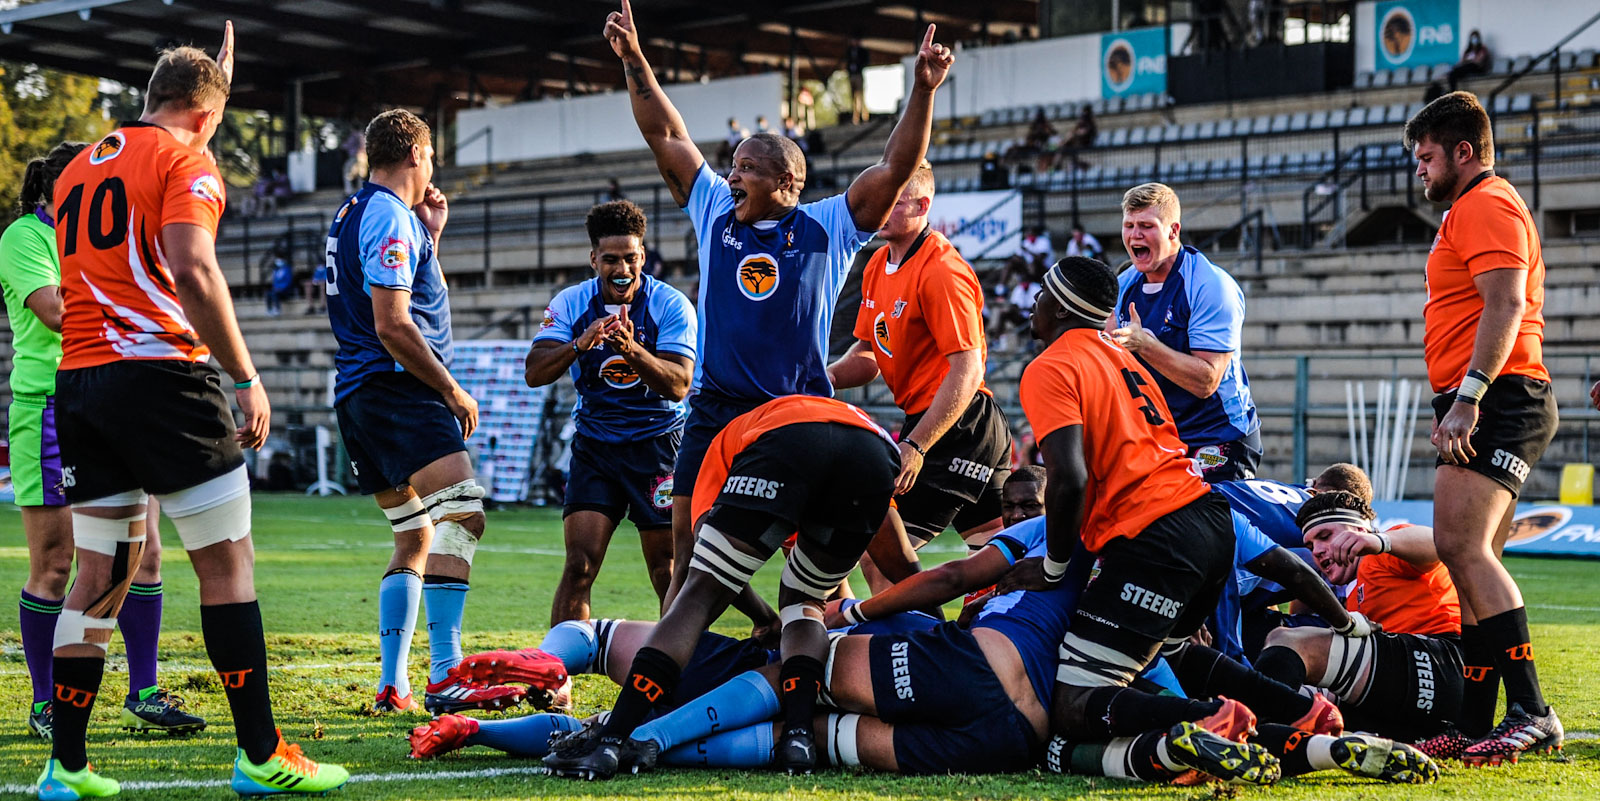 CUT celebrate as Johannes Terblanche goes over for the first try of the match against UJ.